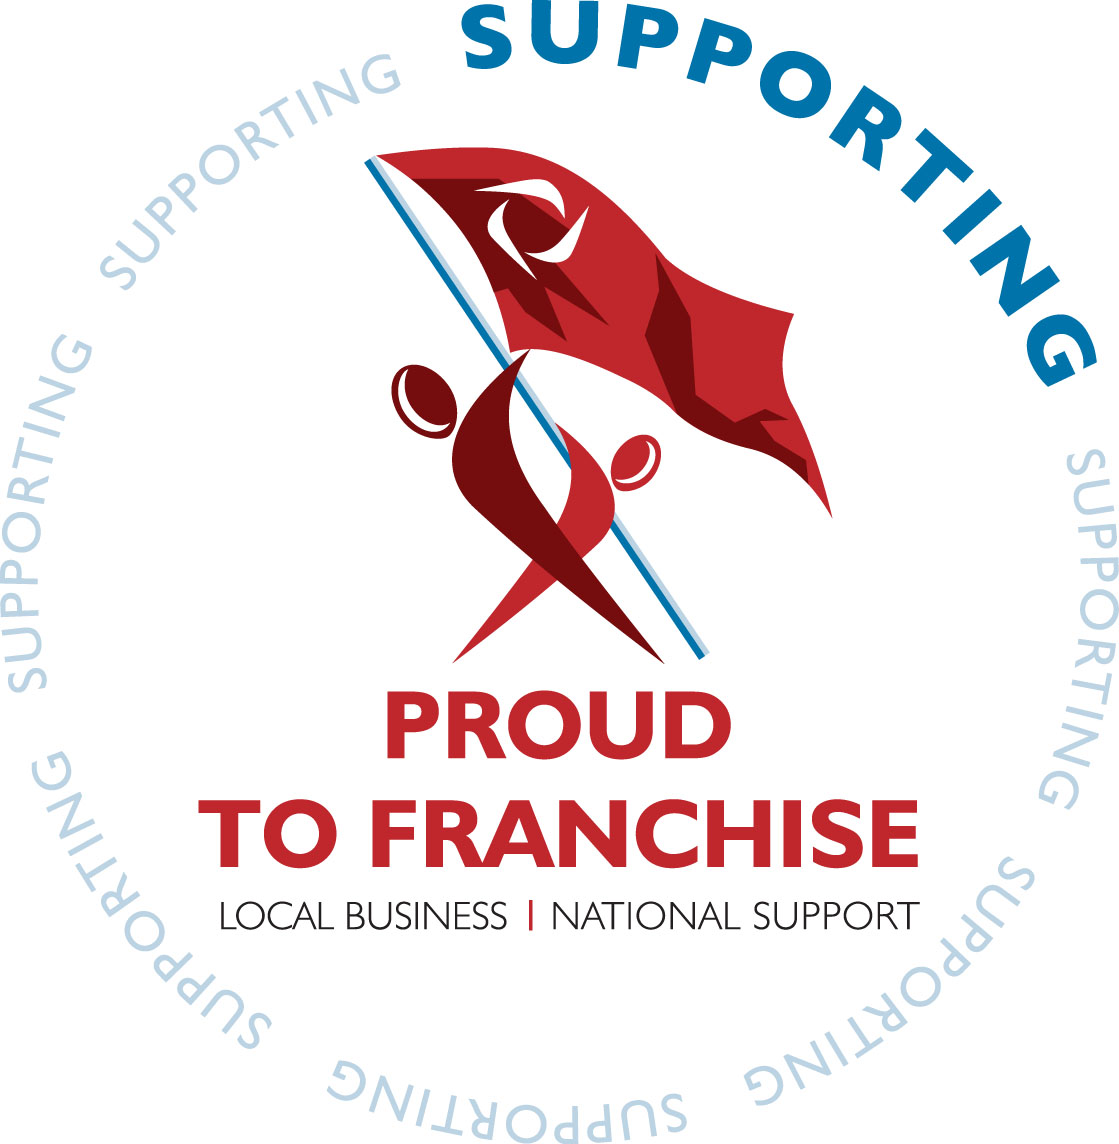 Proud to Franchise